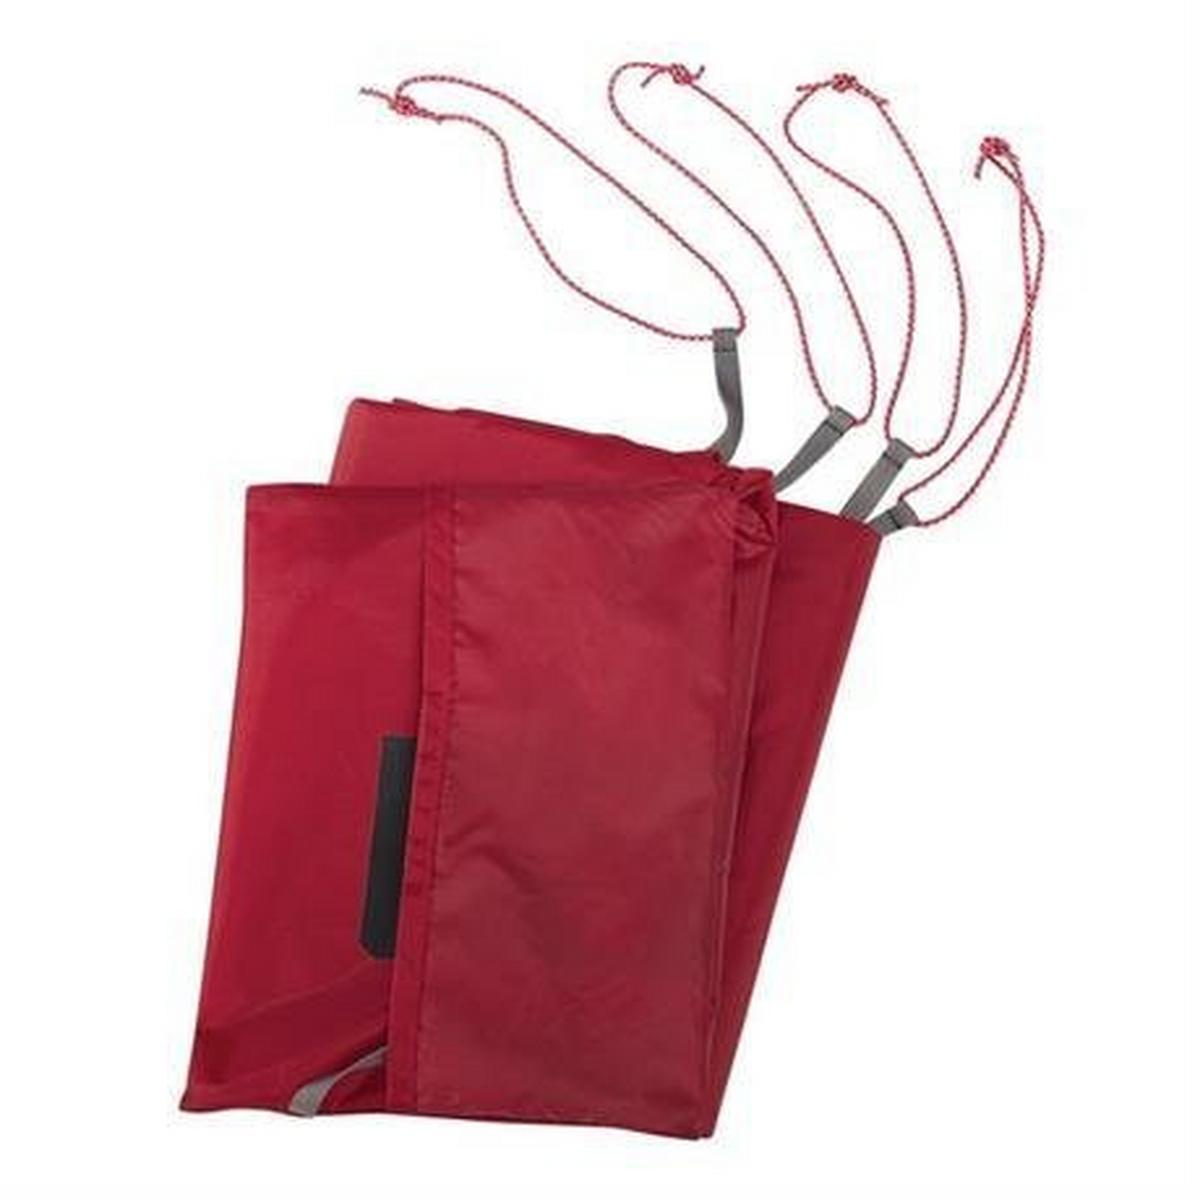 M.s.r. MSR Tent Spare/Accessory: Footprint Universal 1 Person